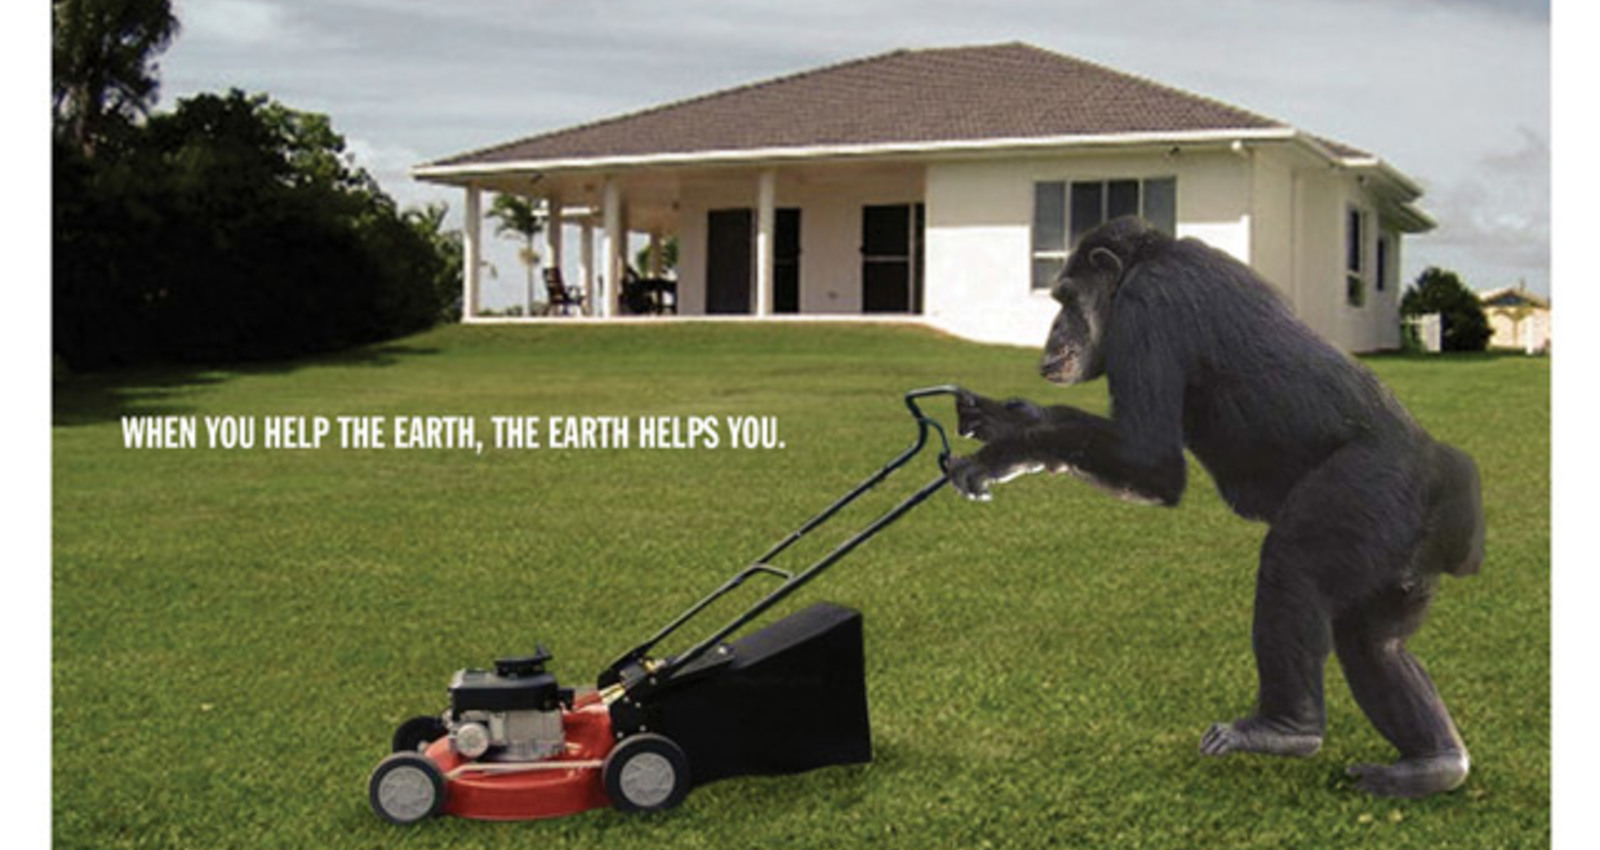 the earth helps you